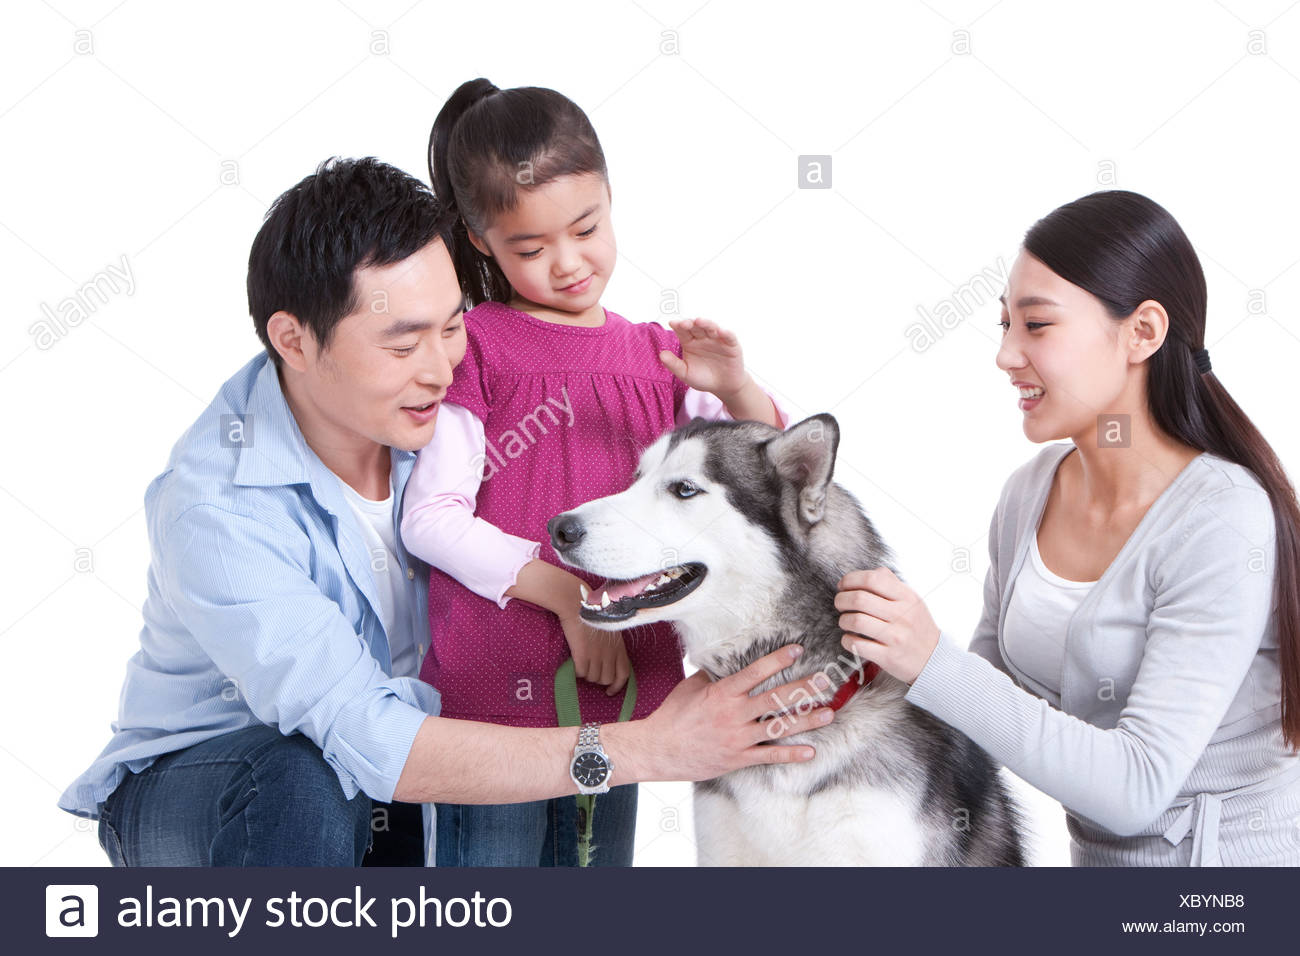 Family playing with a Husky dog - Stock Image